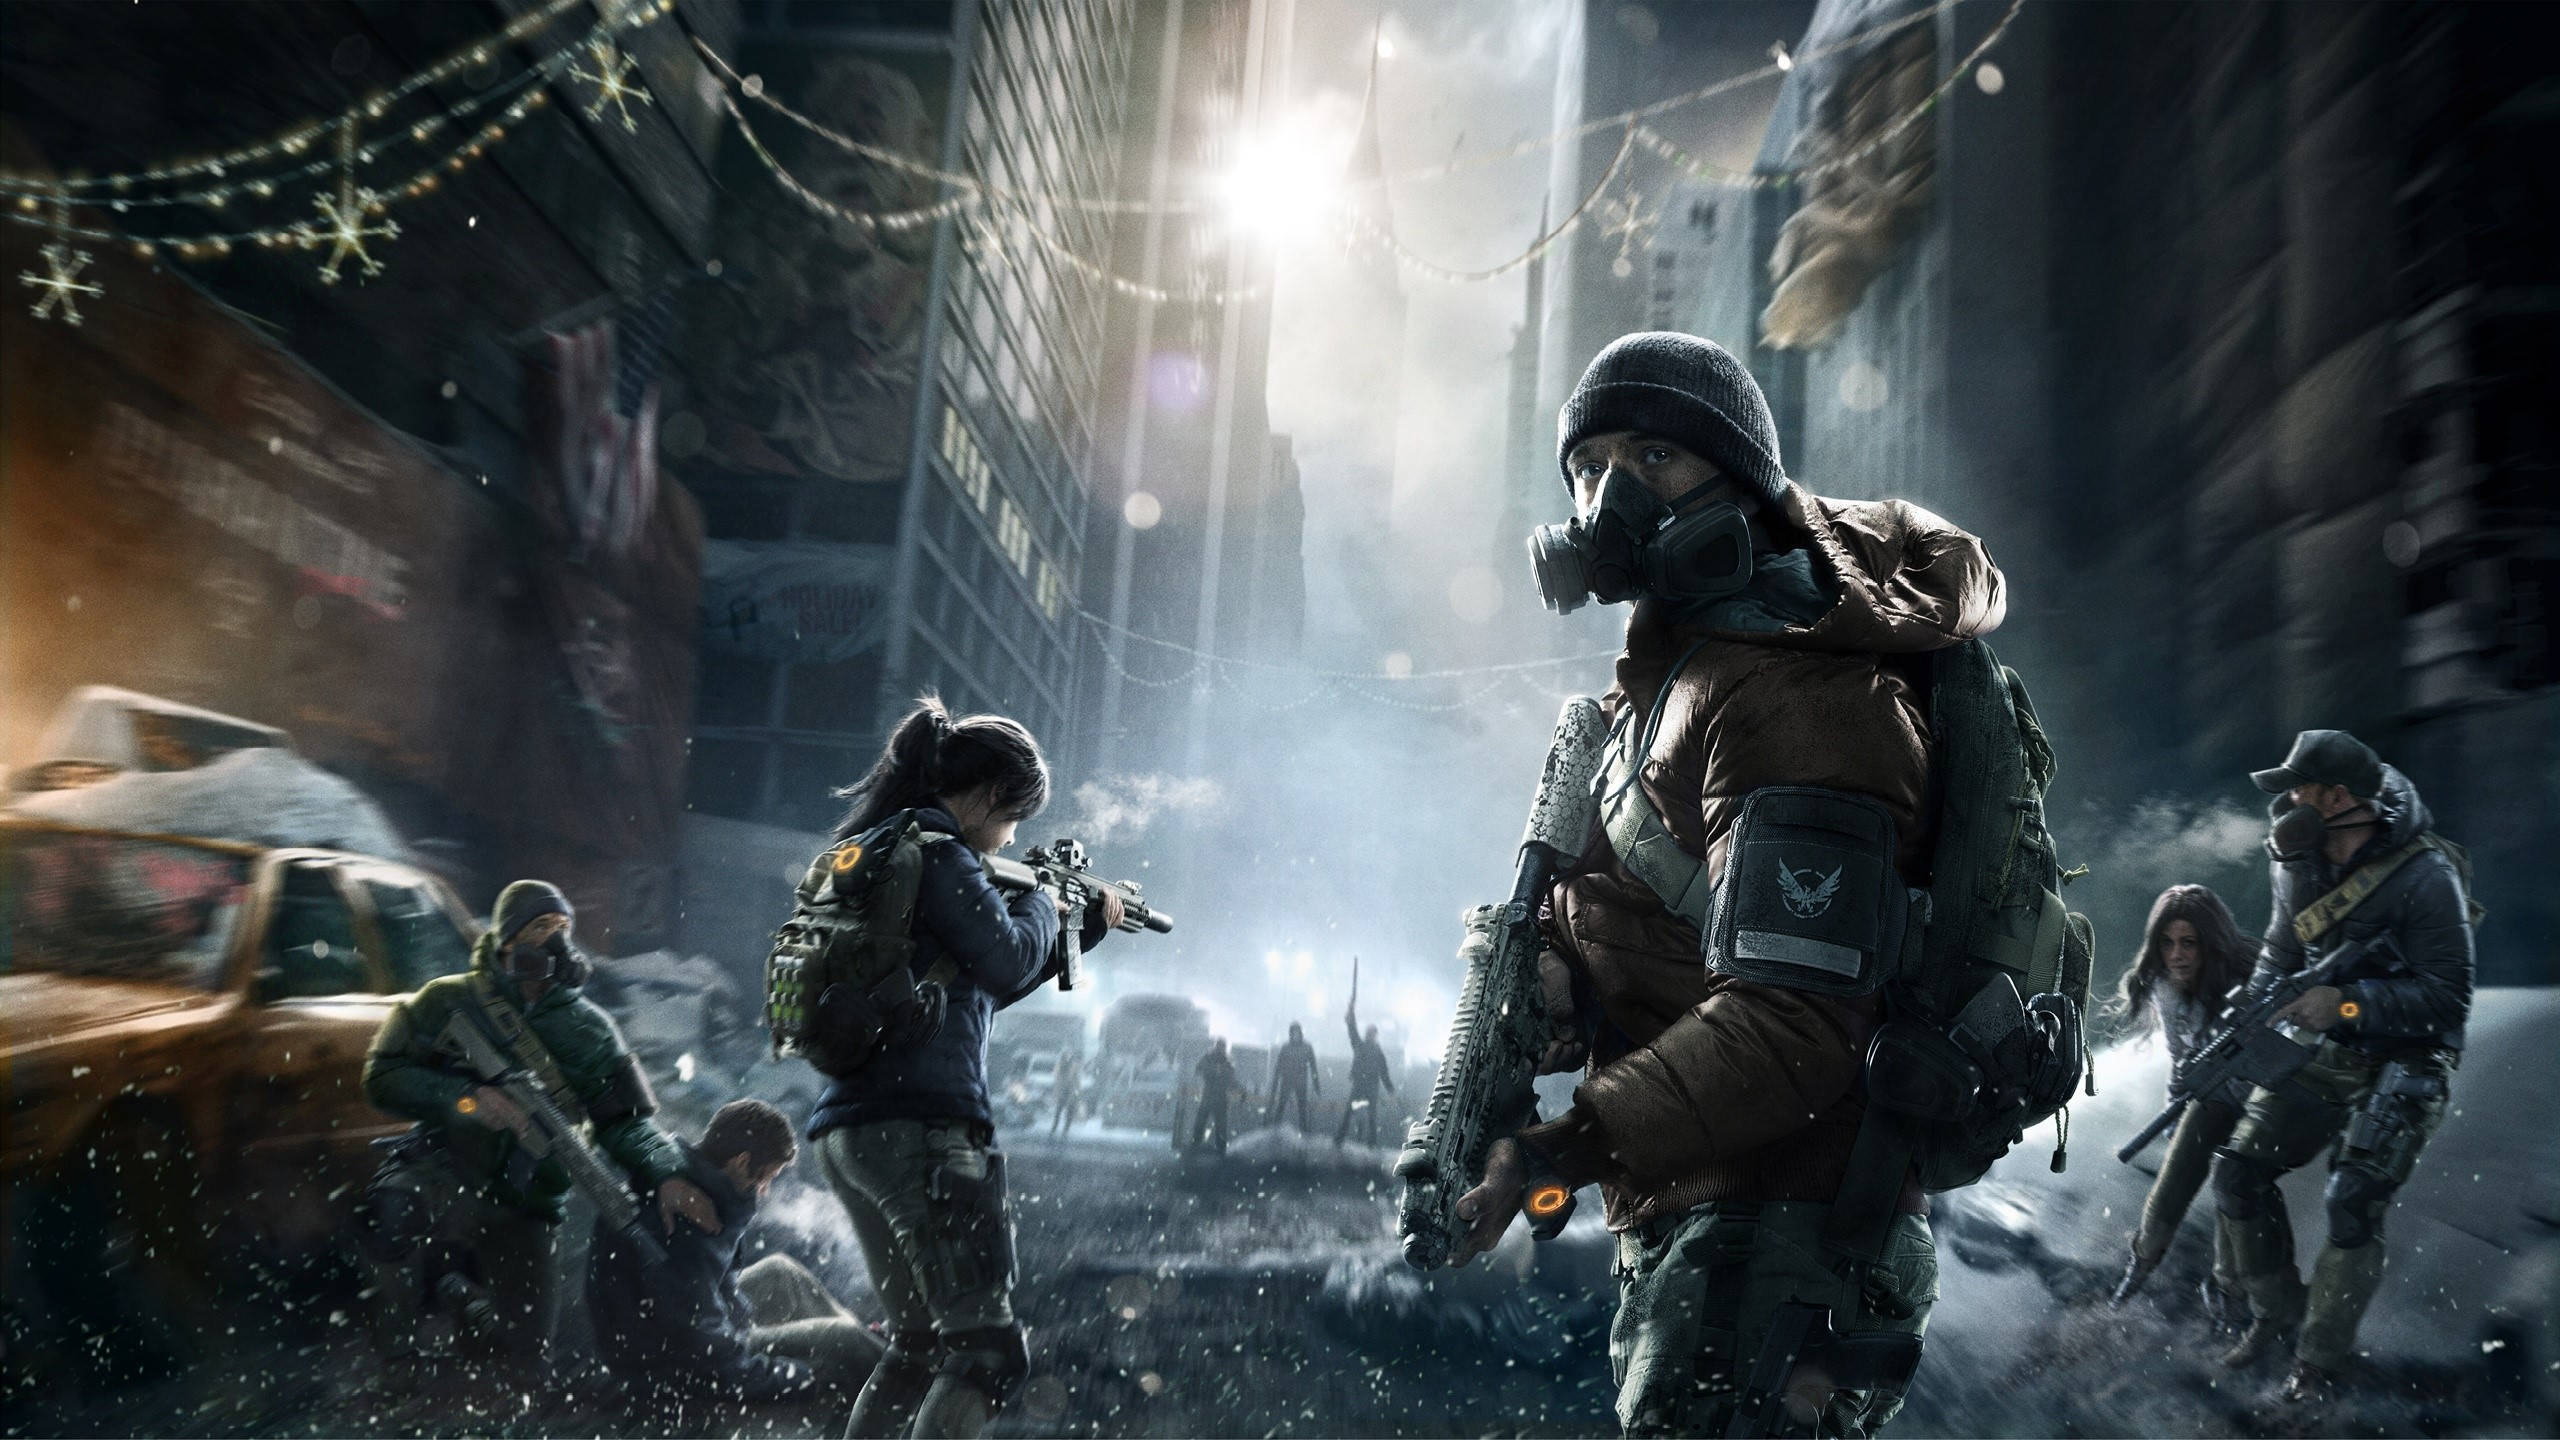 Wallpaper Tom Clancys The division in New York